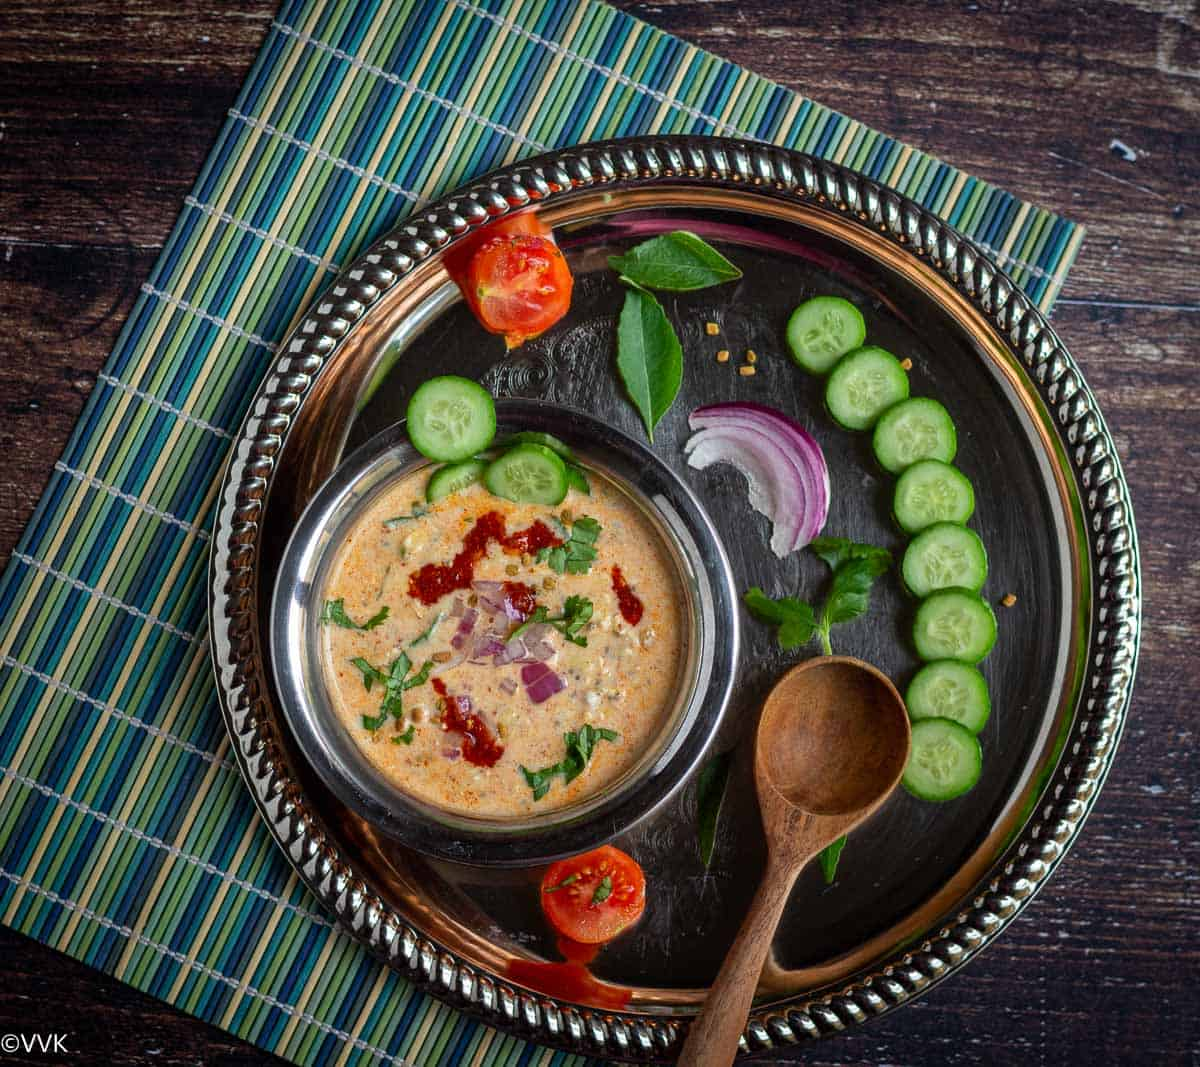 overnihgt pickle oats served in kadai bowl placed on a silver plate with cut cucumbers, tomato, onion topped with onions